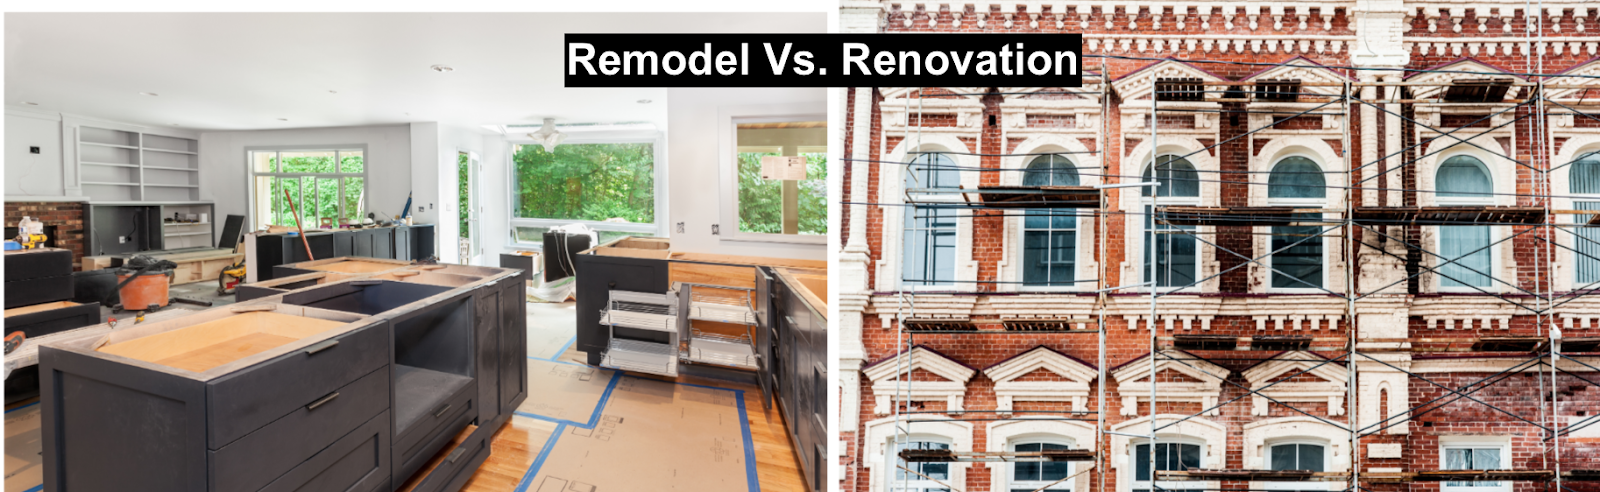 remodel vs. renovation